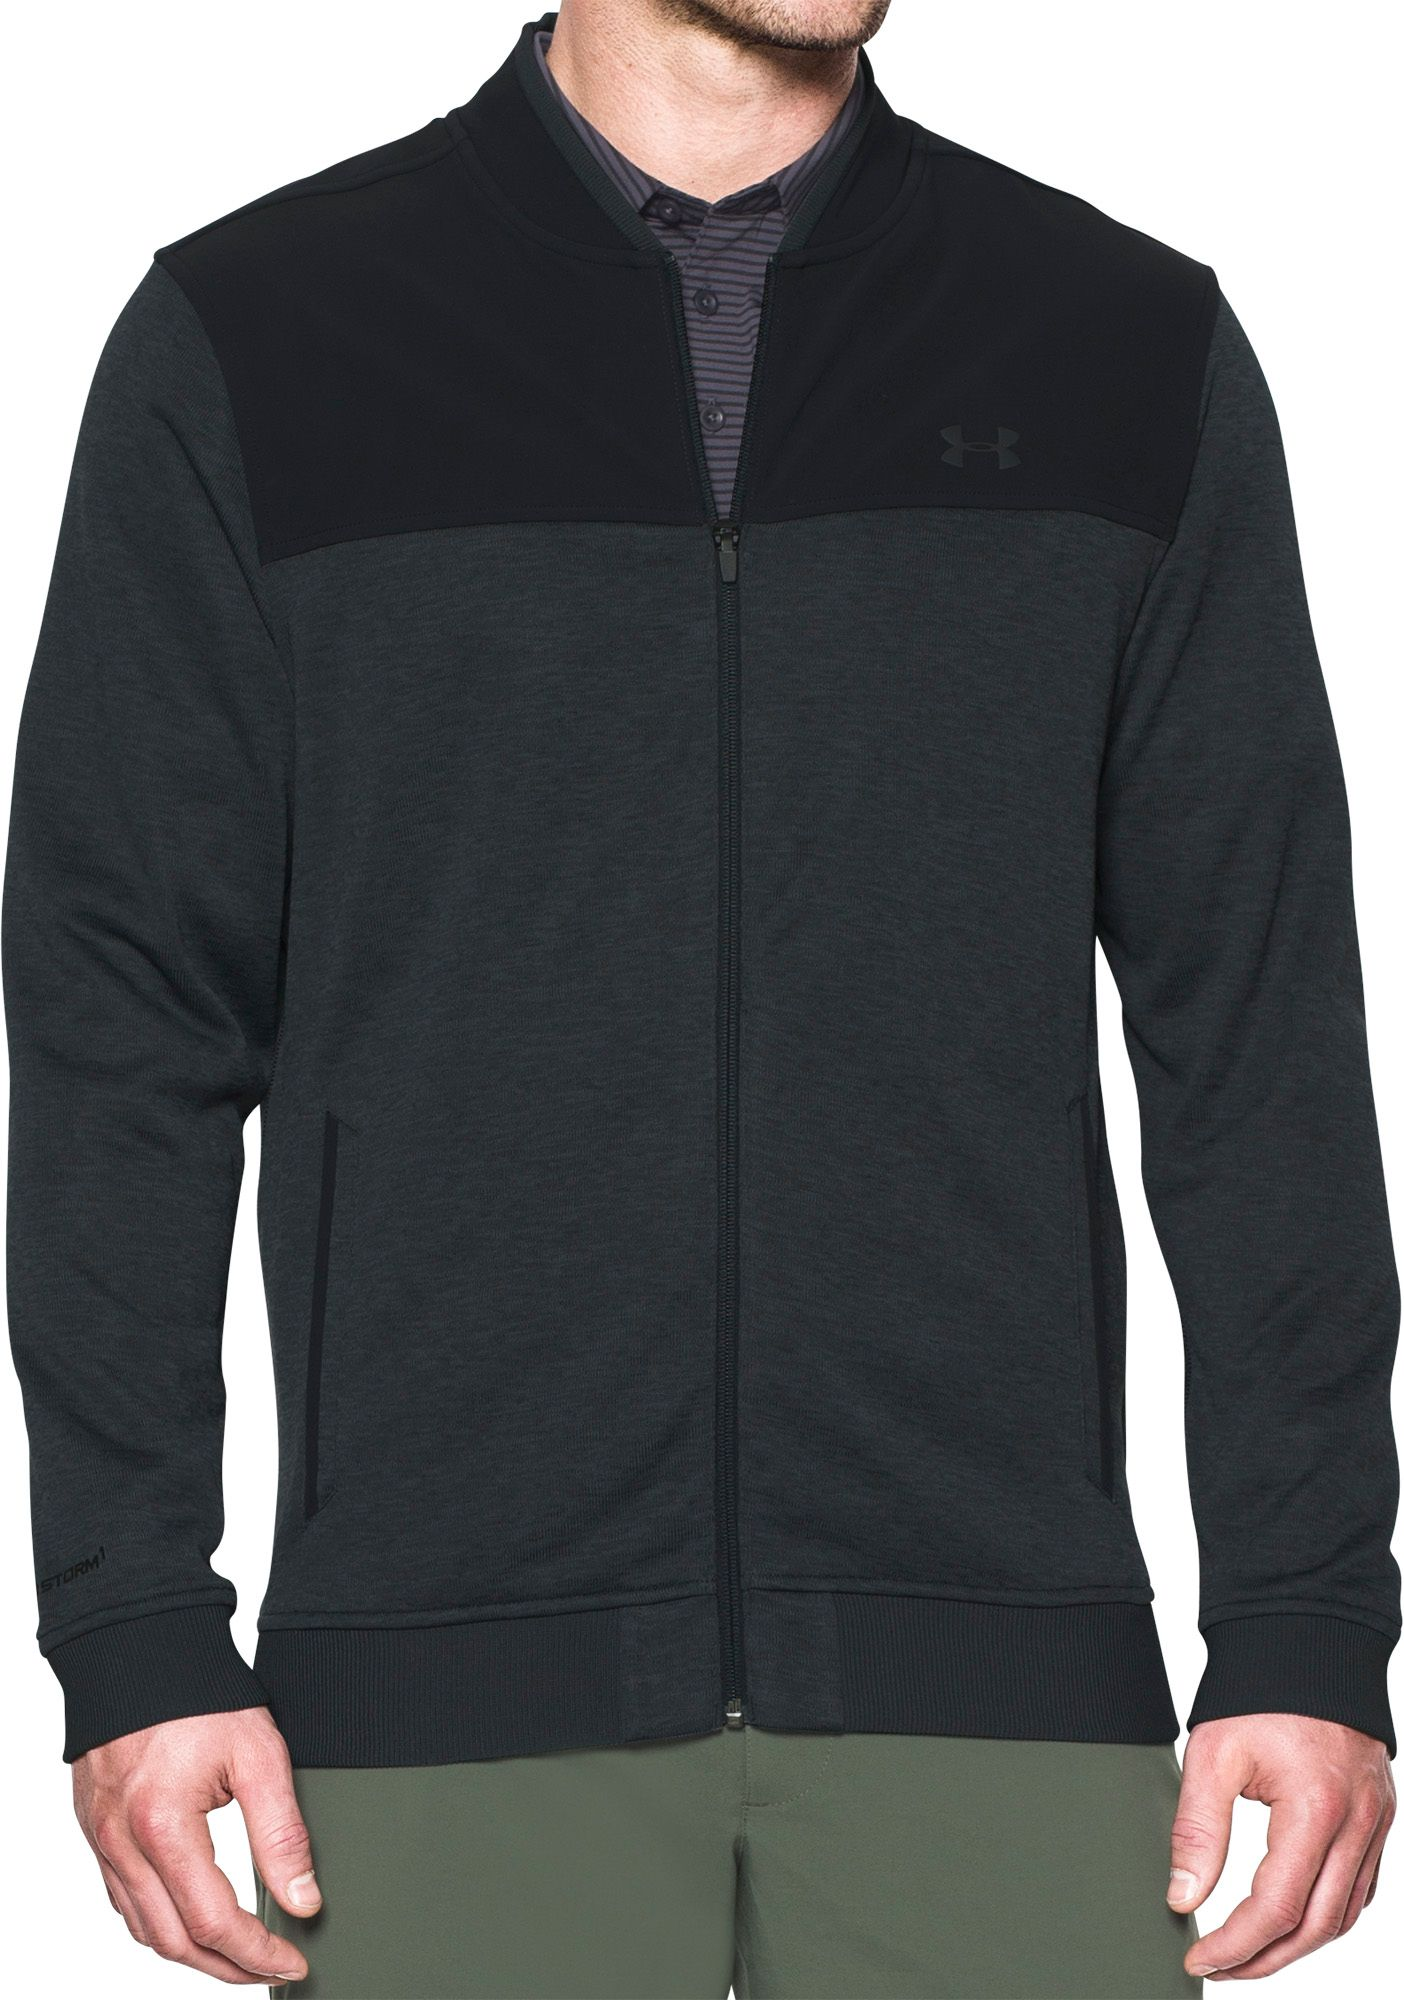 Under Armour Mens Storm Fleece Jacket DICKS Sporting Goods